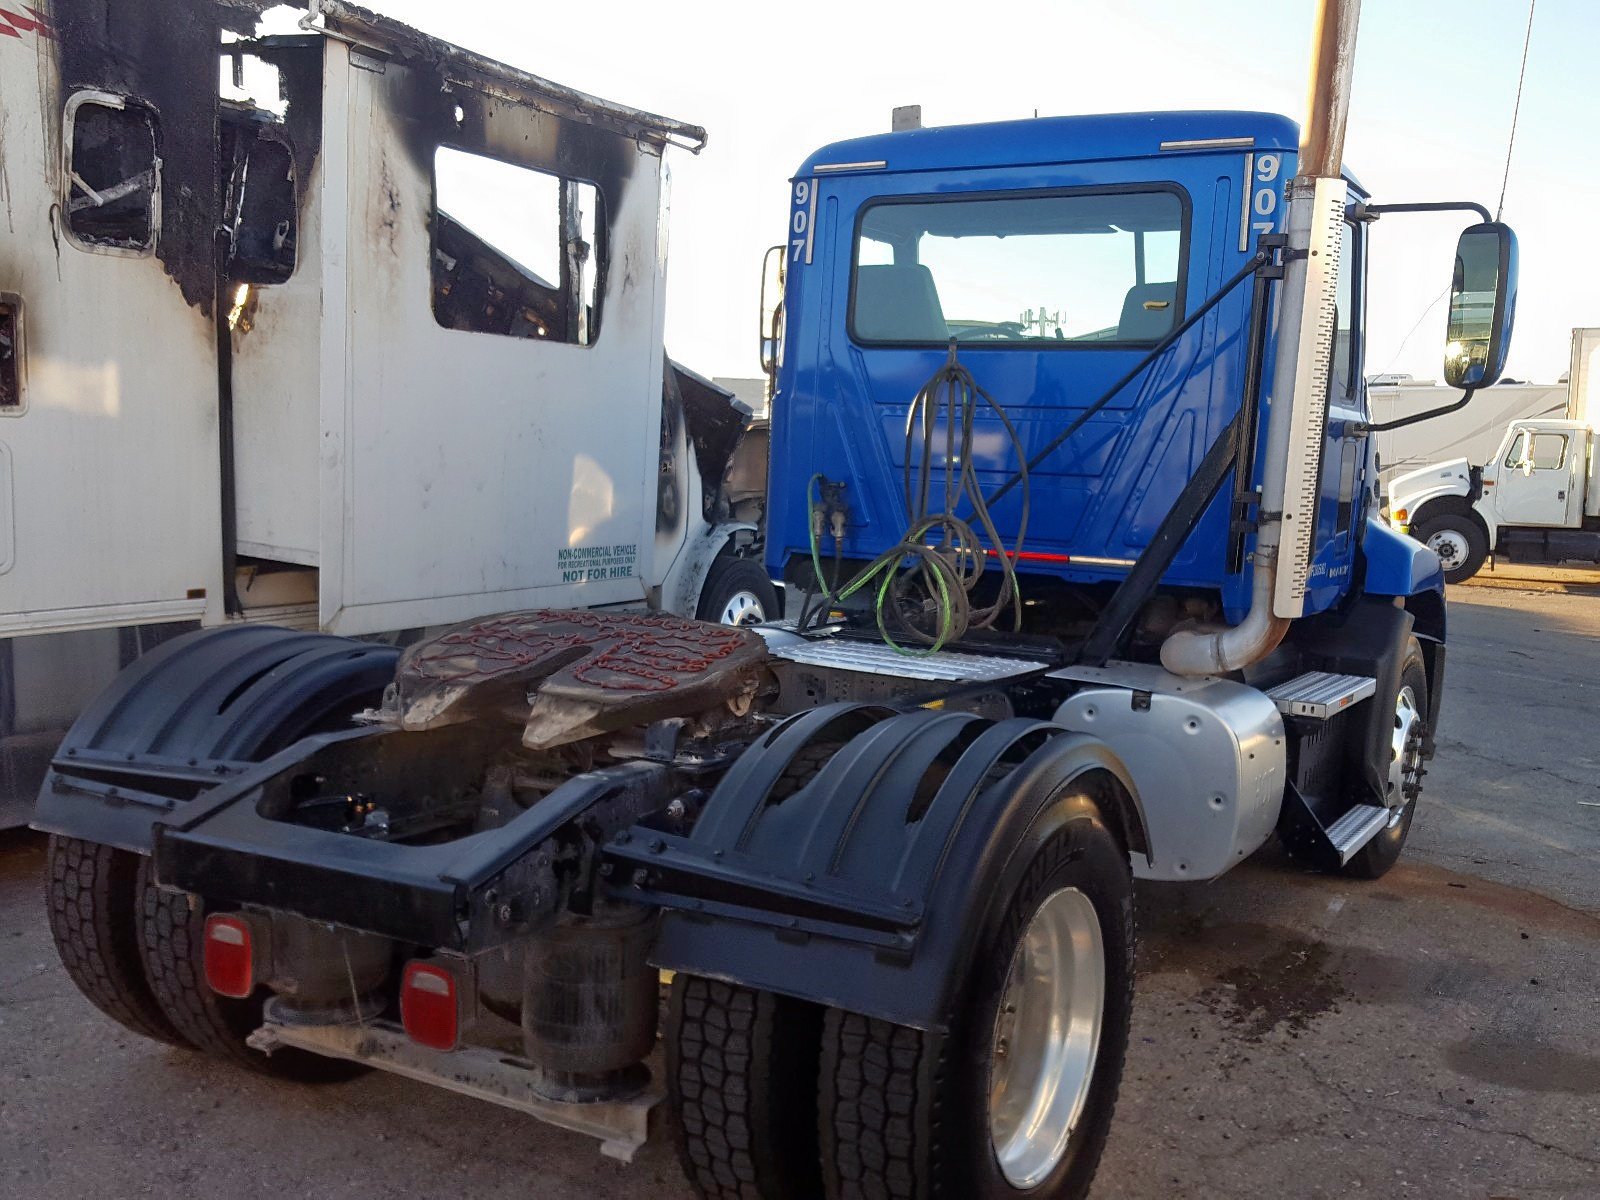 1M1AW01Y7HM010374 - 2017 Mack 600 Cxu600 10.8L rear view